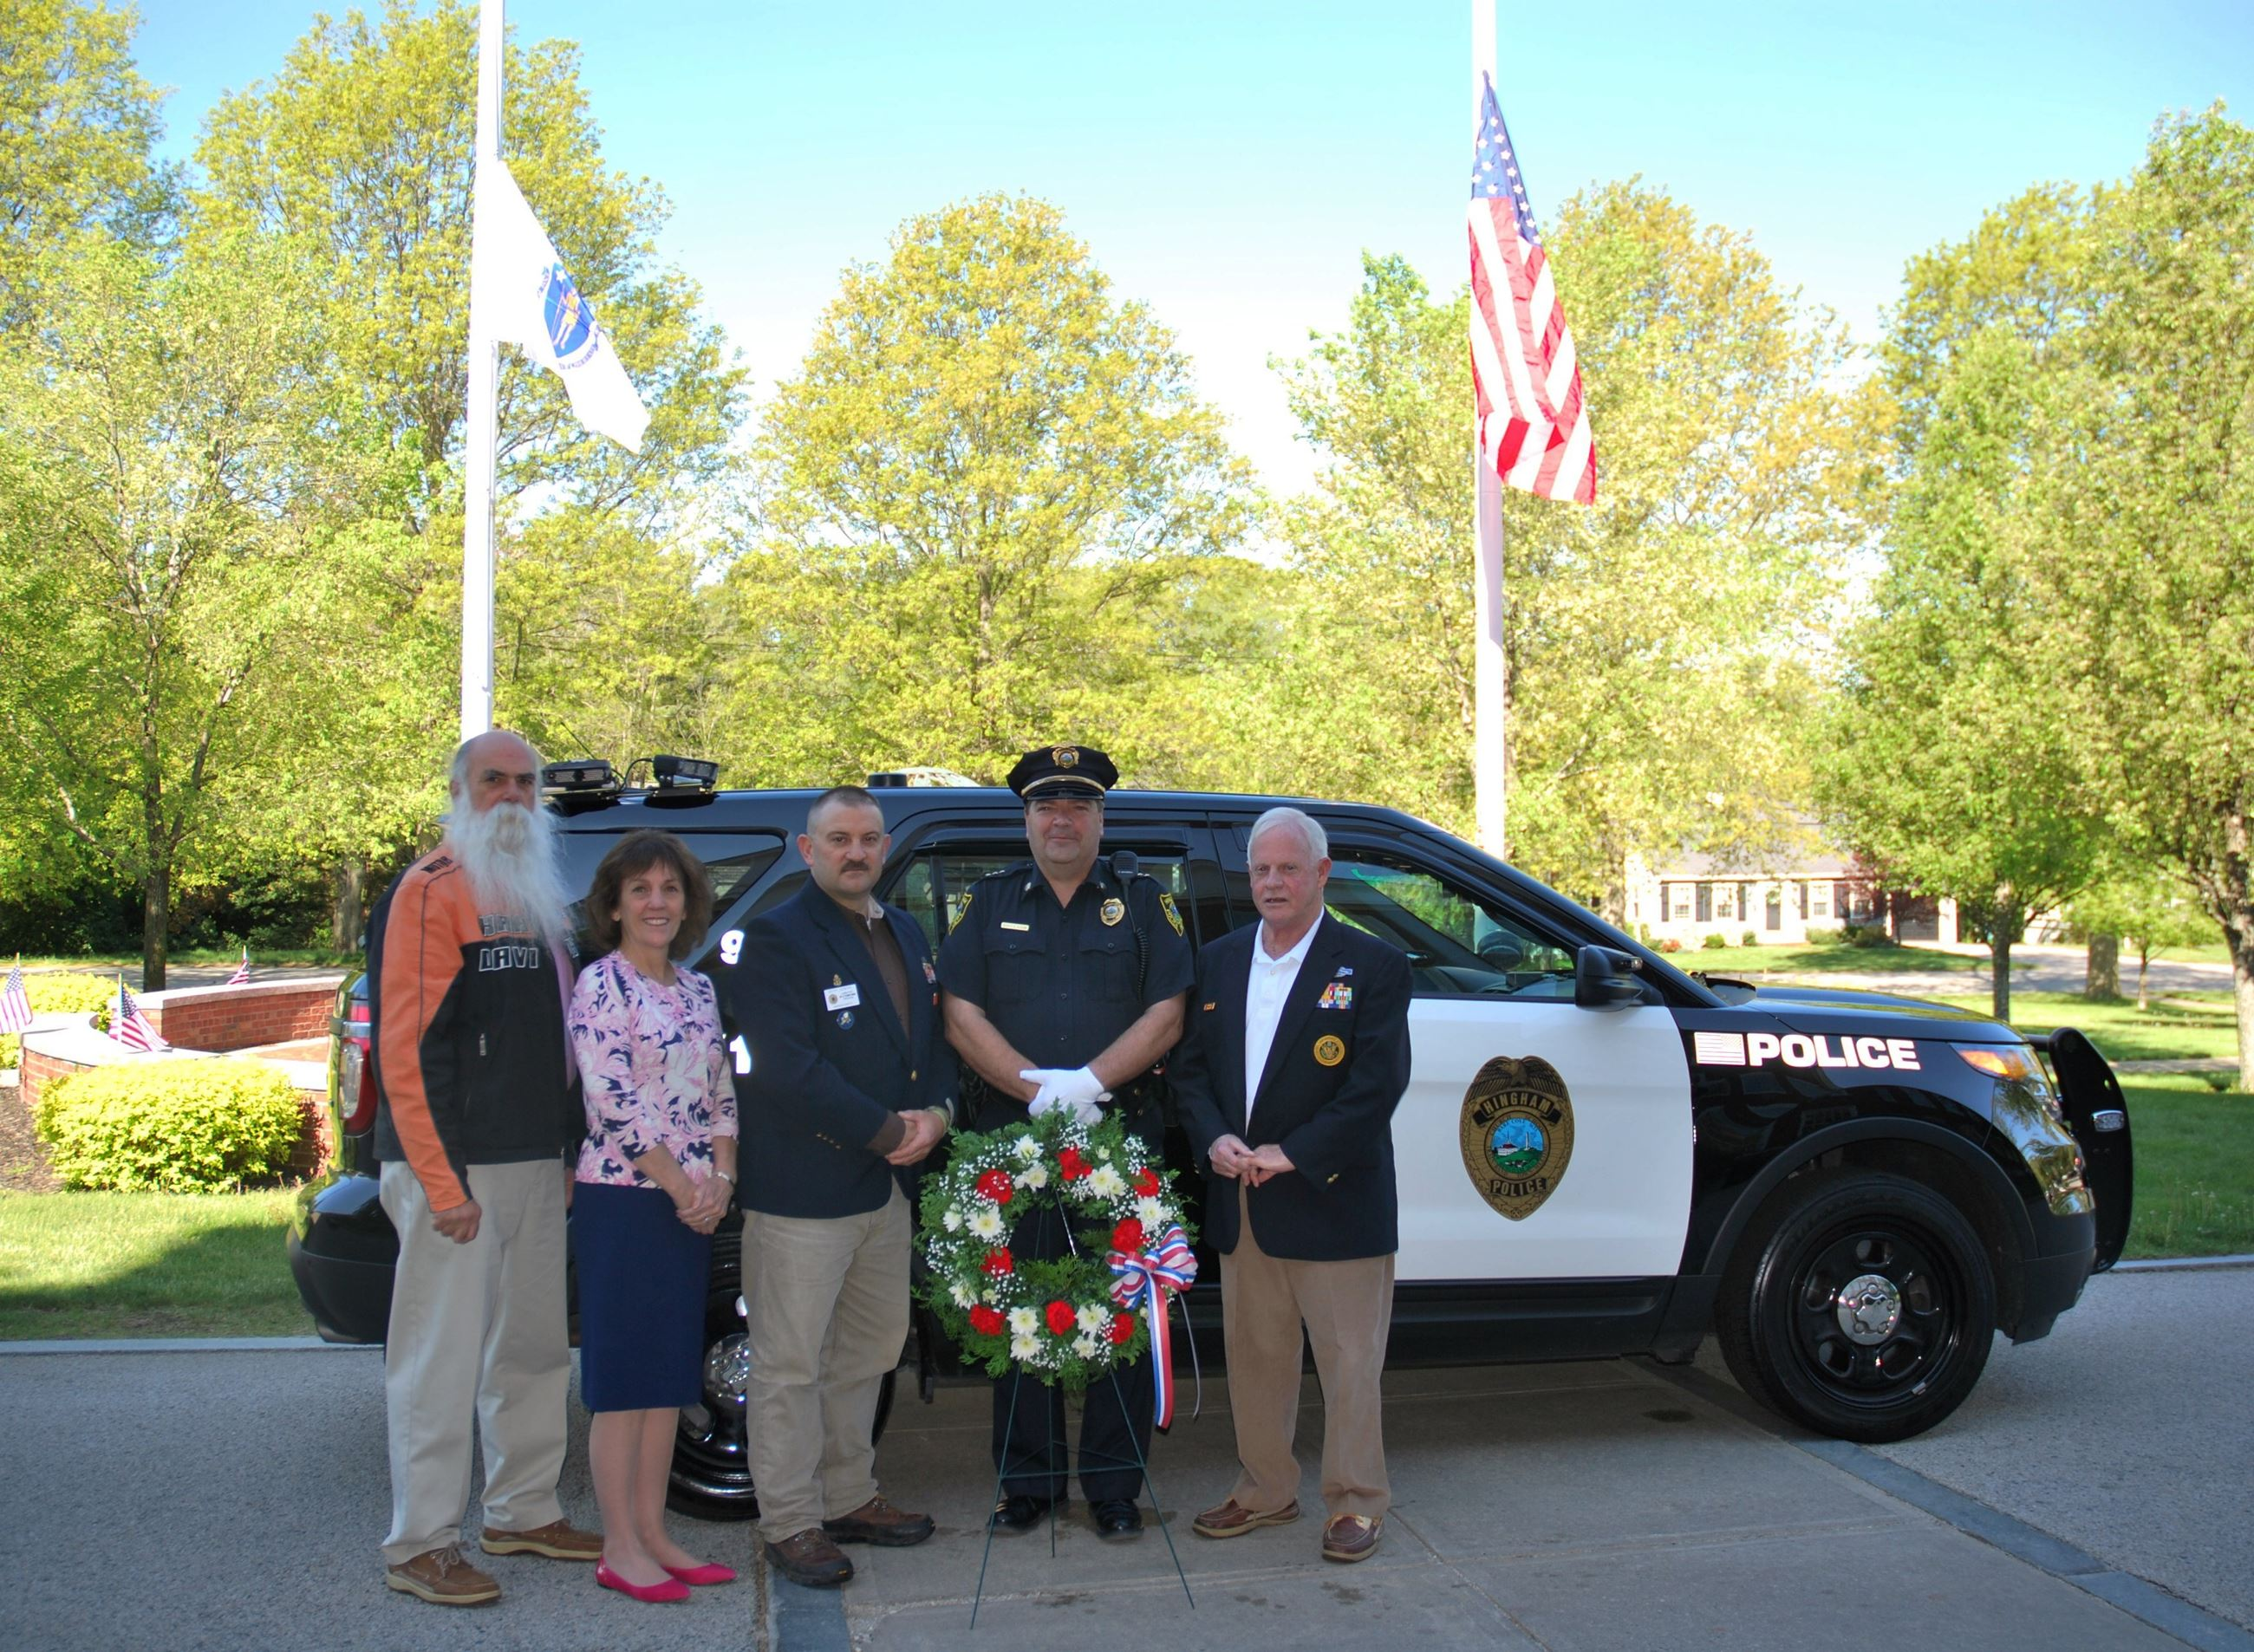 Wreath presented to the Police Department